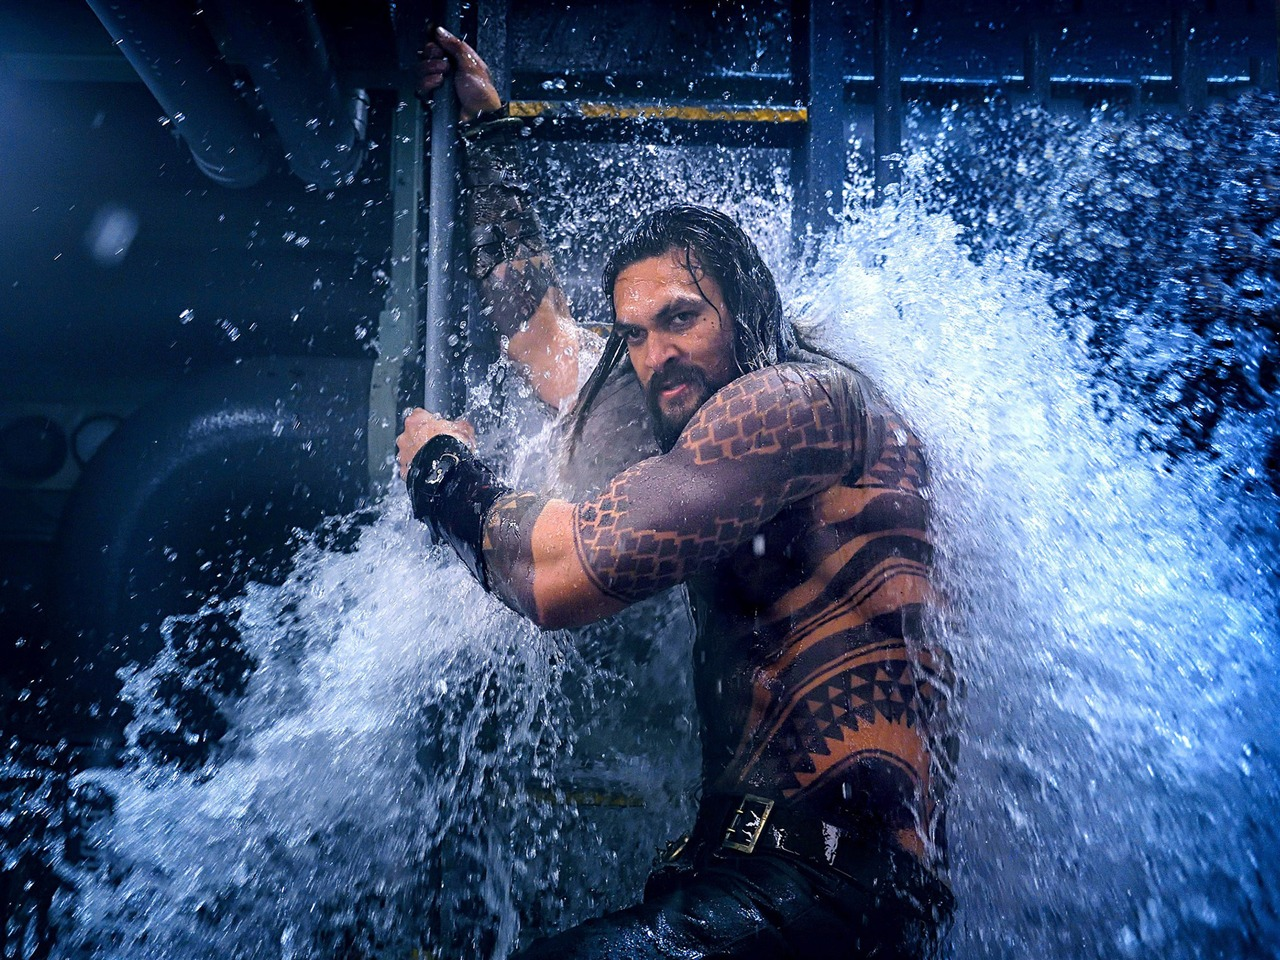 2018 Movie Posters: Aquaman Jason Momoa 2018 Movie Poster Preview